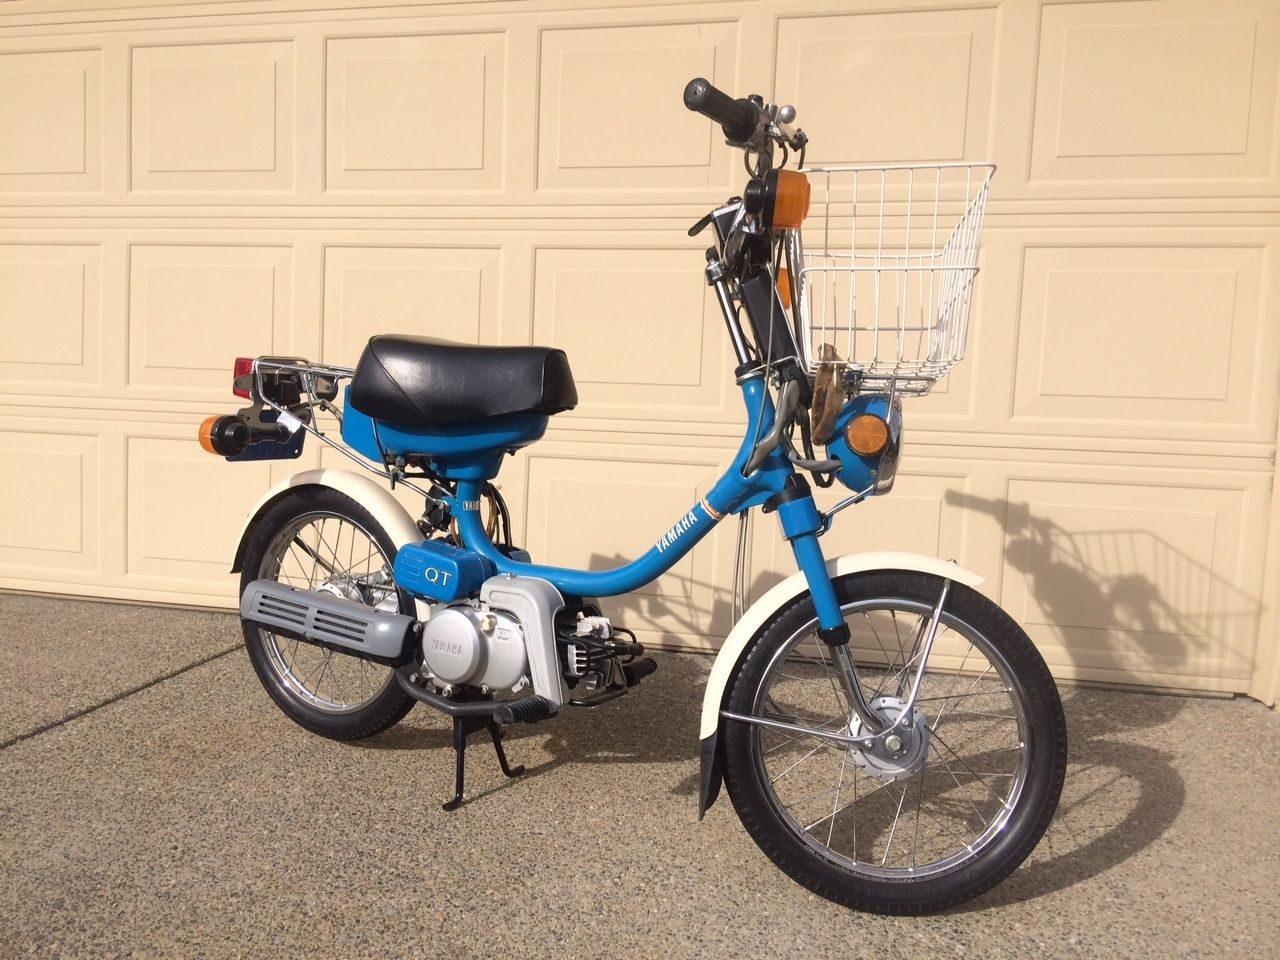 Vintage Yamaha For Sale 88